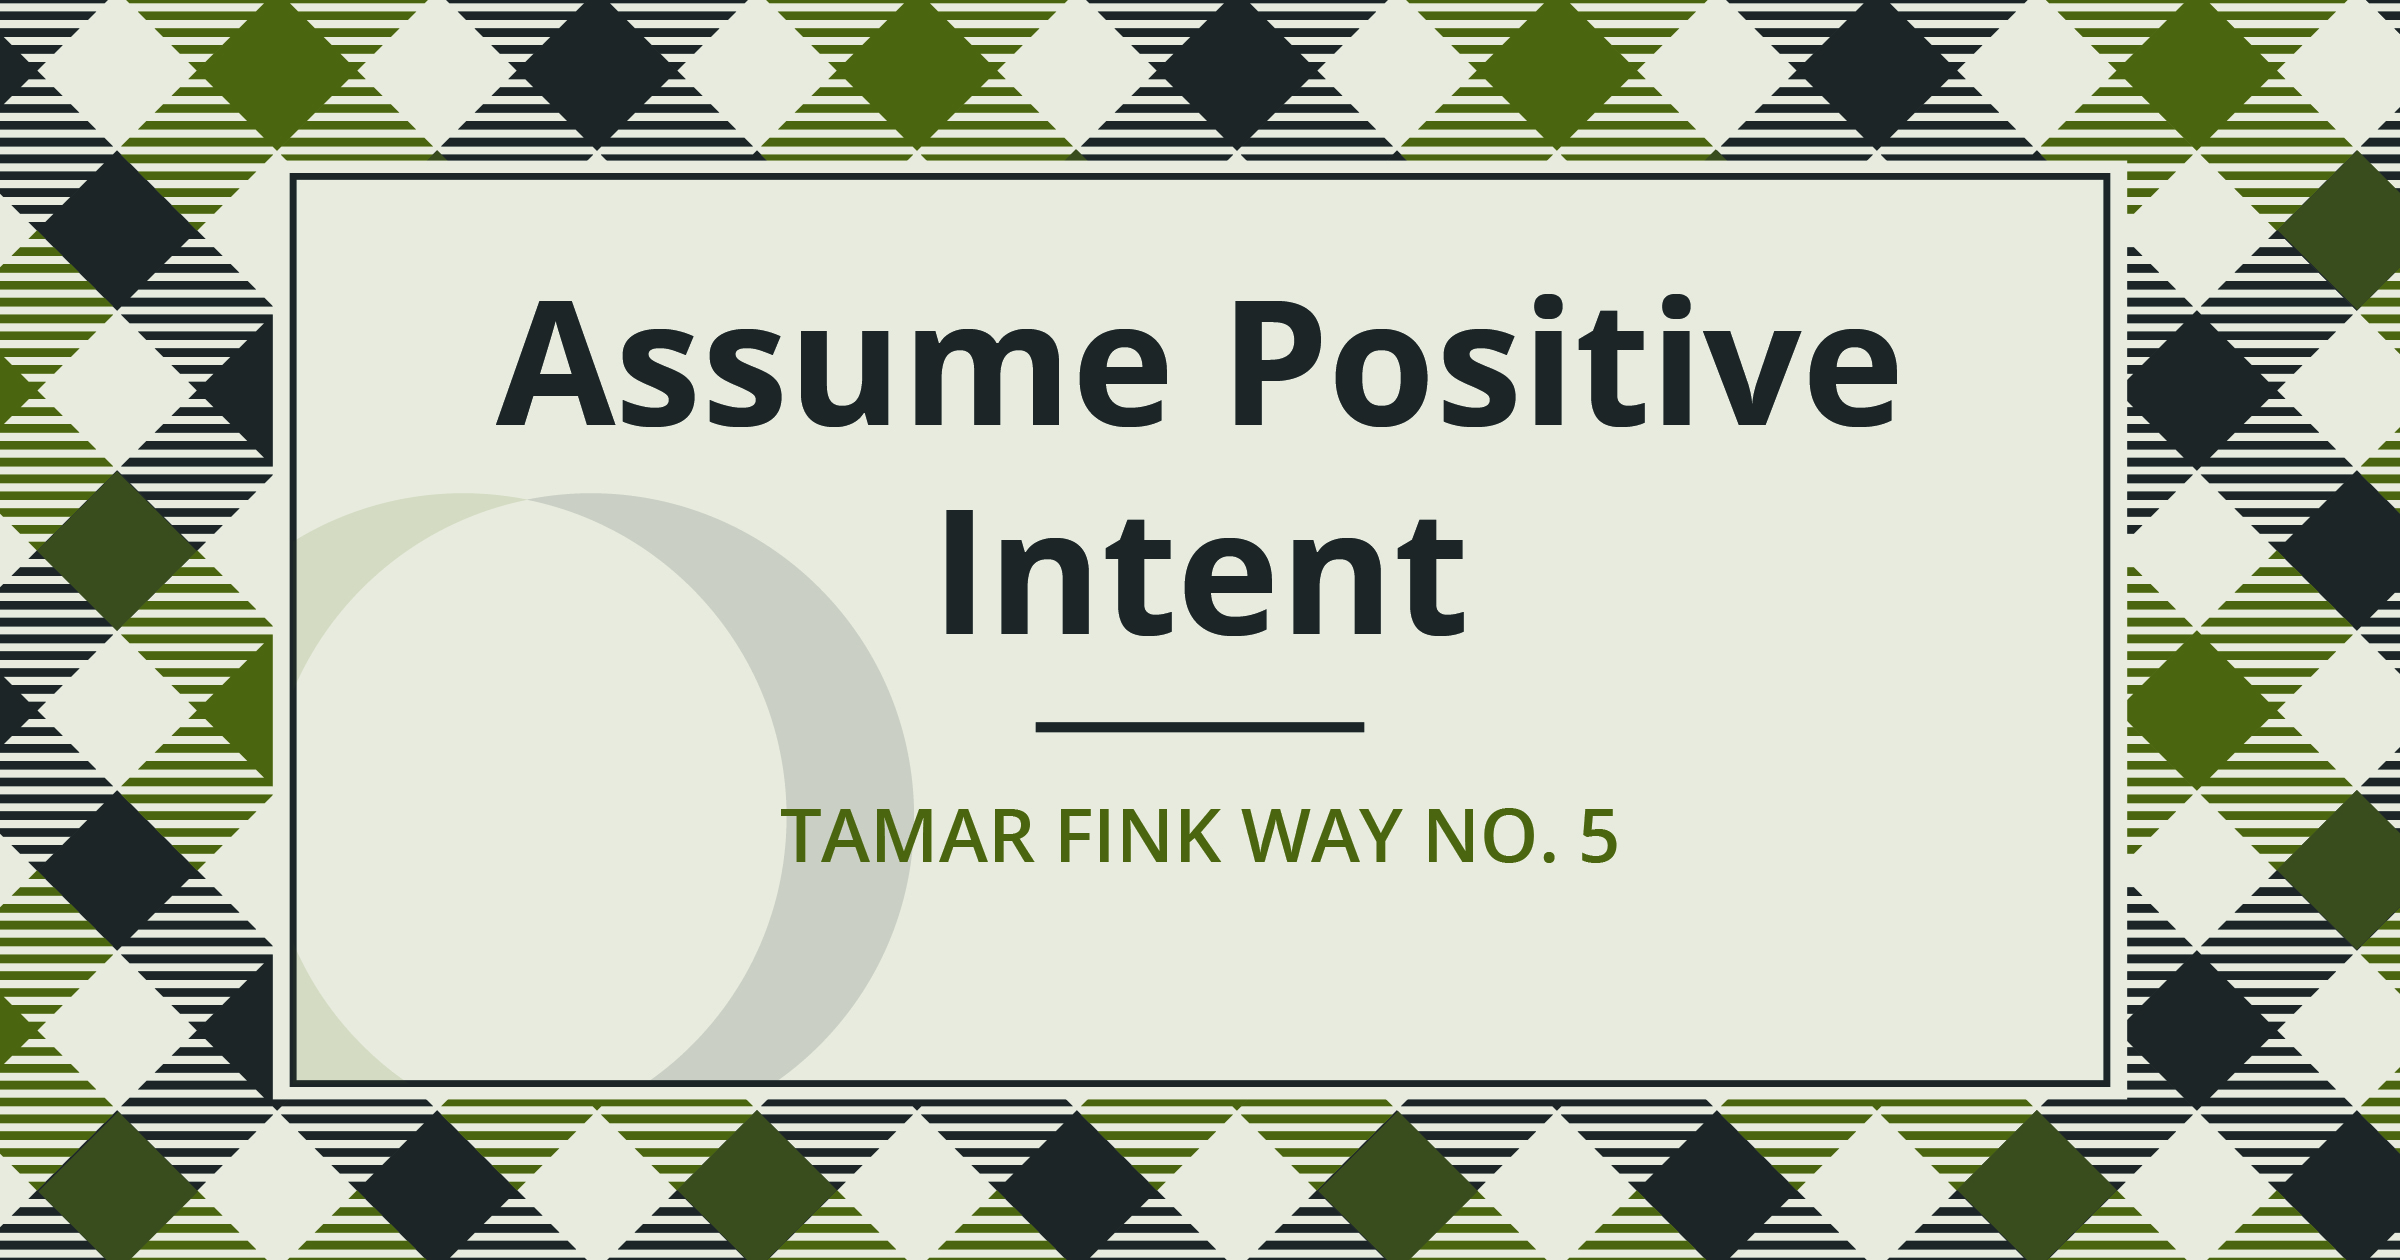 The Tamar Fink Way – #5